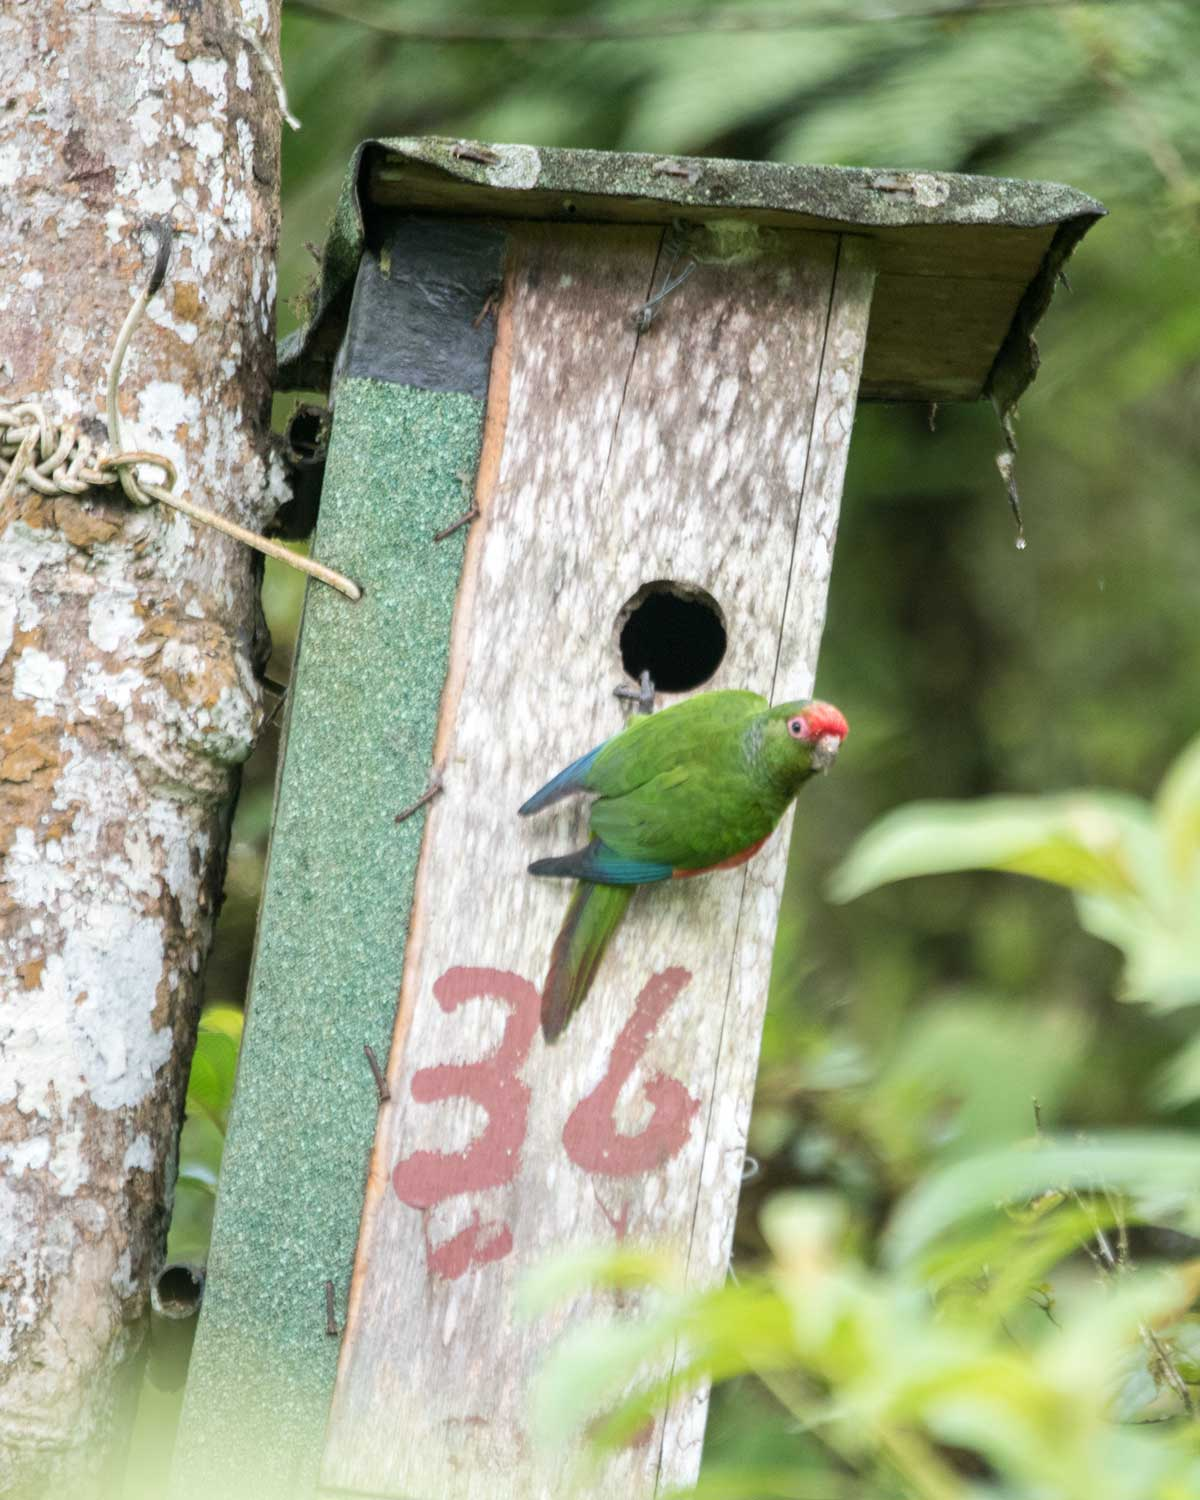 El Oro Parakeet on the nesting box, Buenaventura Research Station, Ecuador | ©Angela Drake